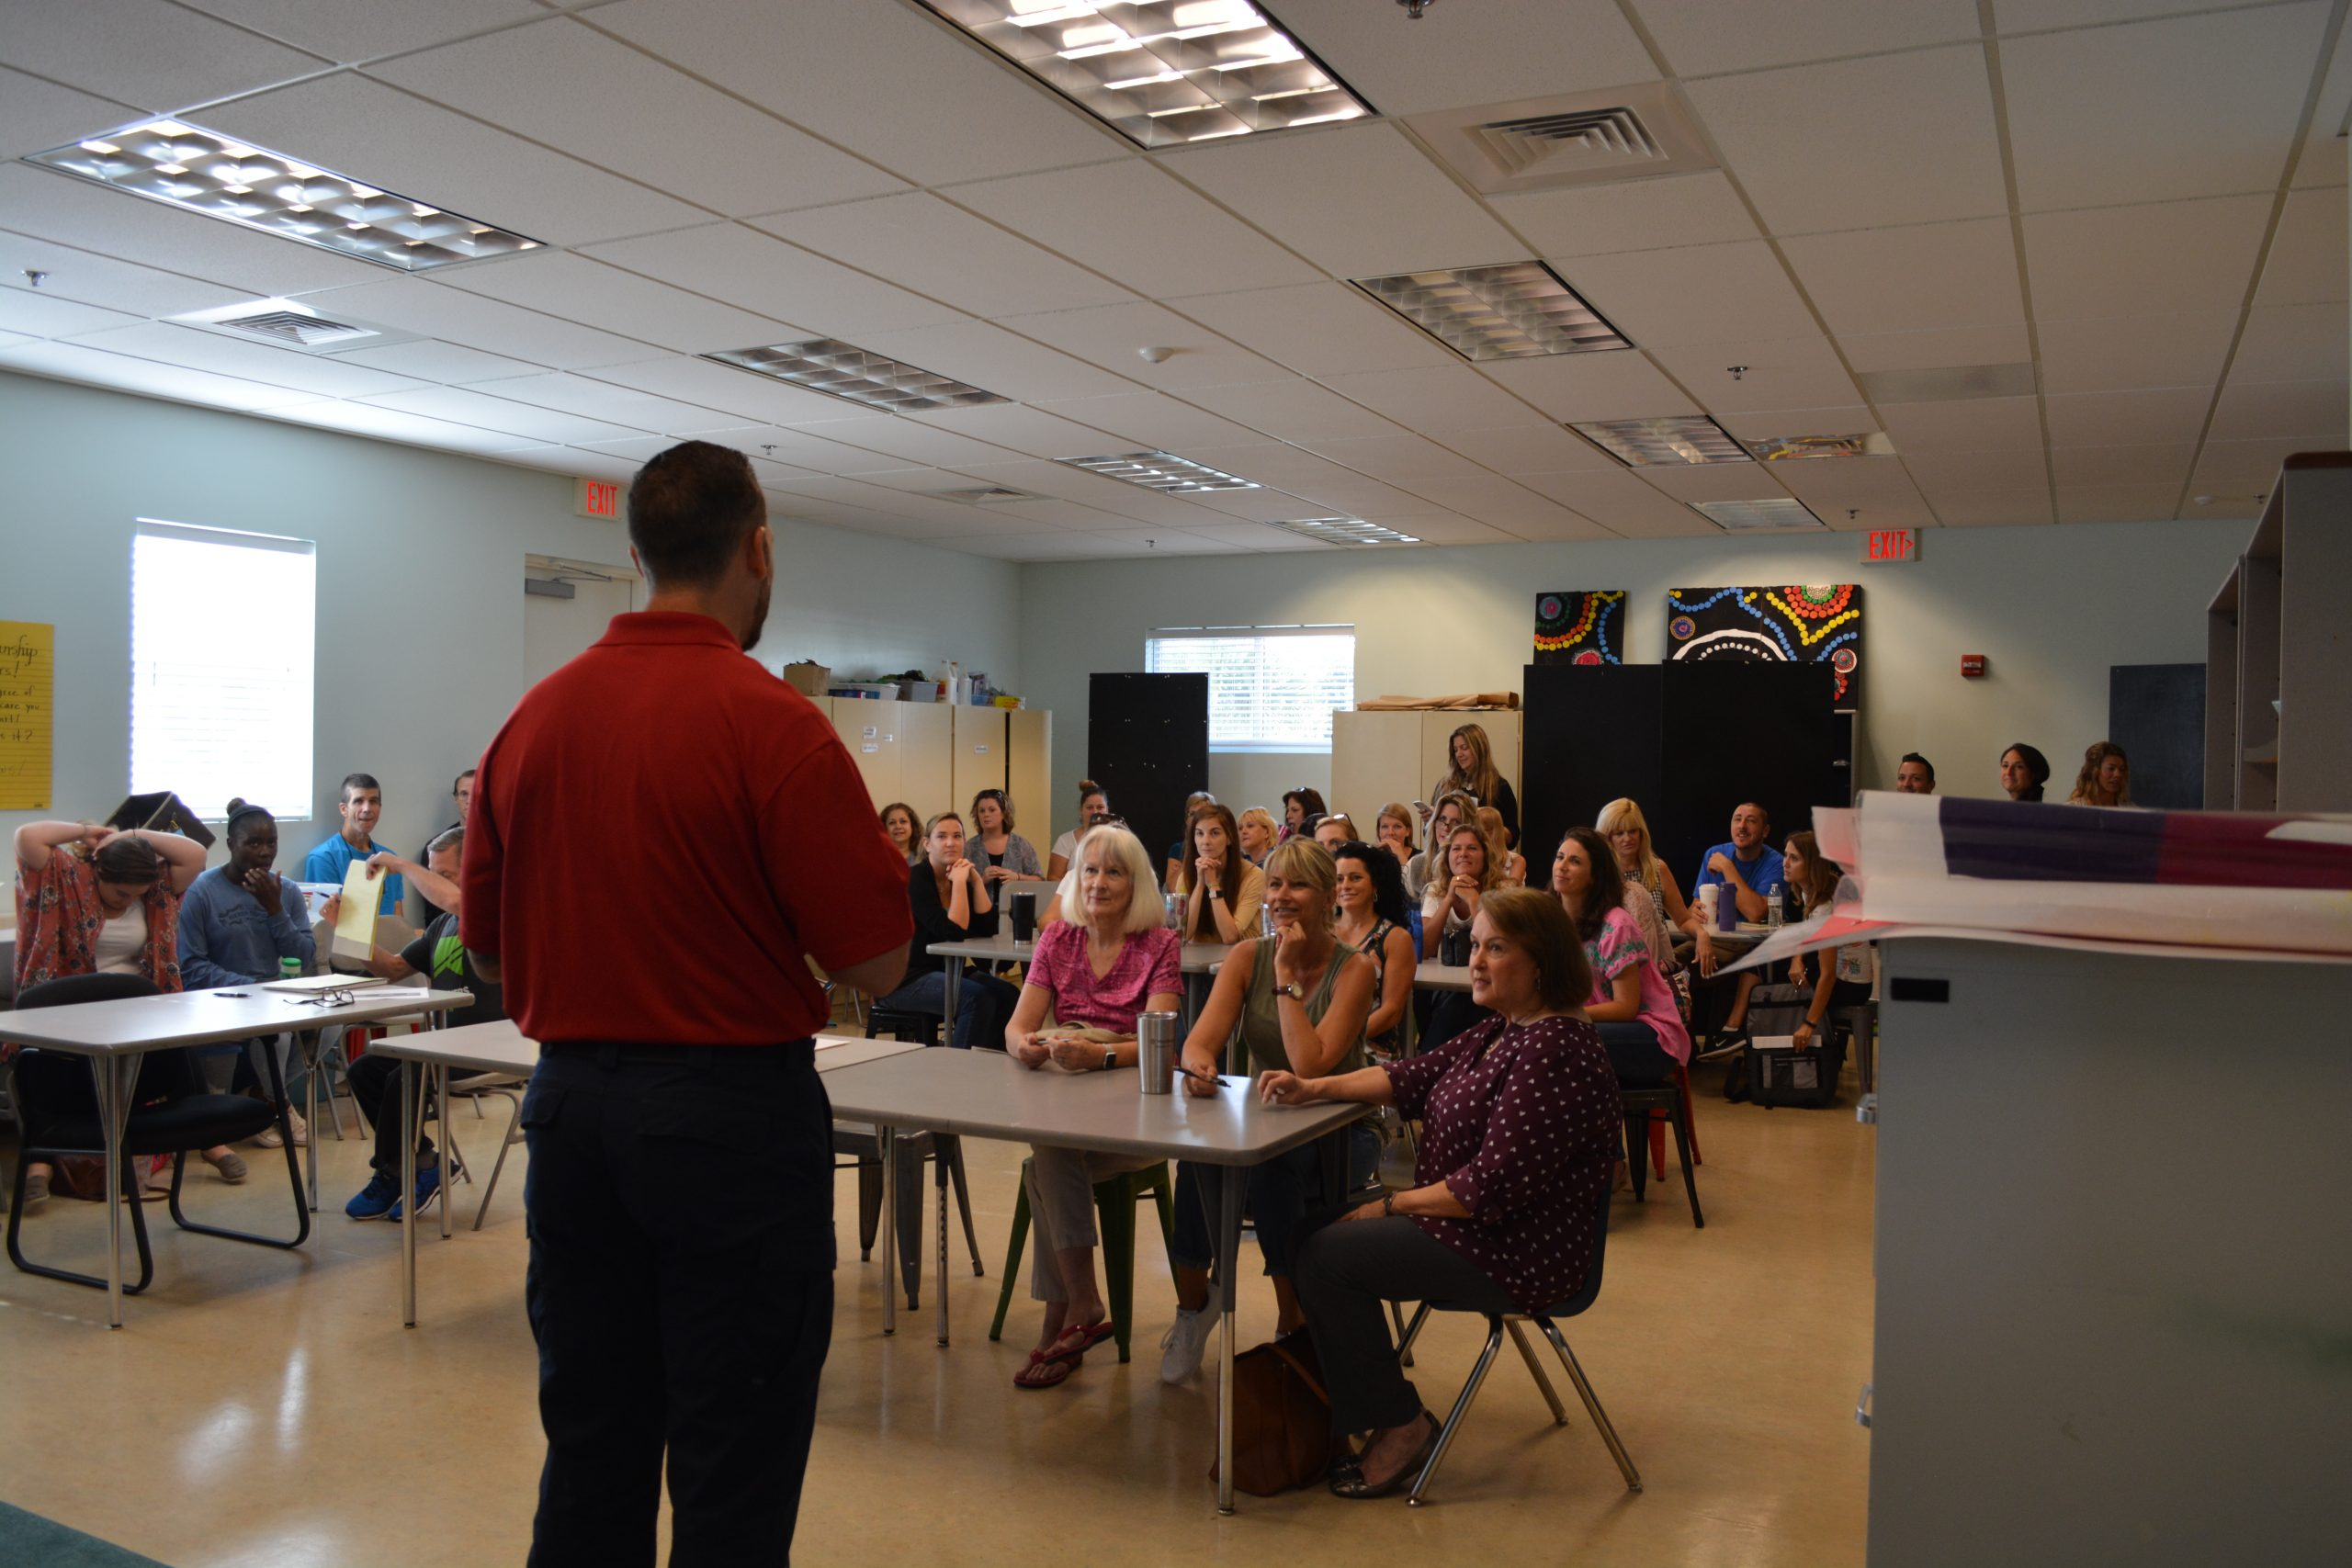 guardian defense trainer at a local school for back to school preparation tips regarding a local active shooter incident